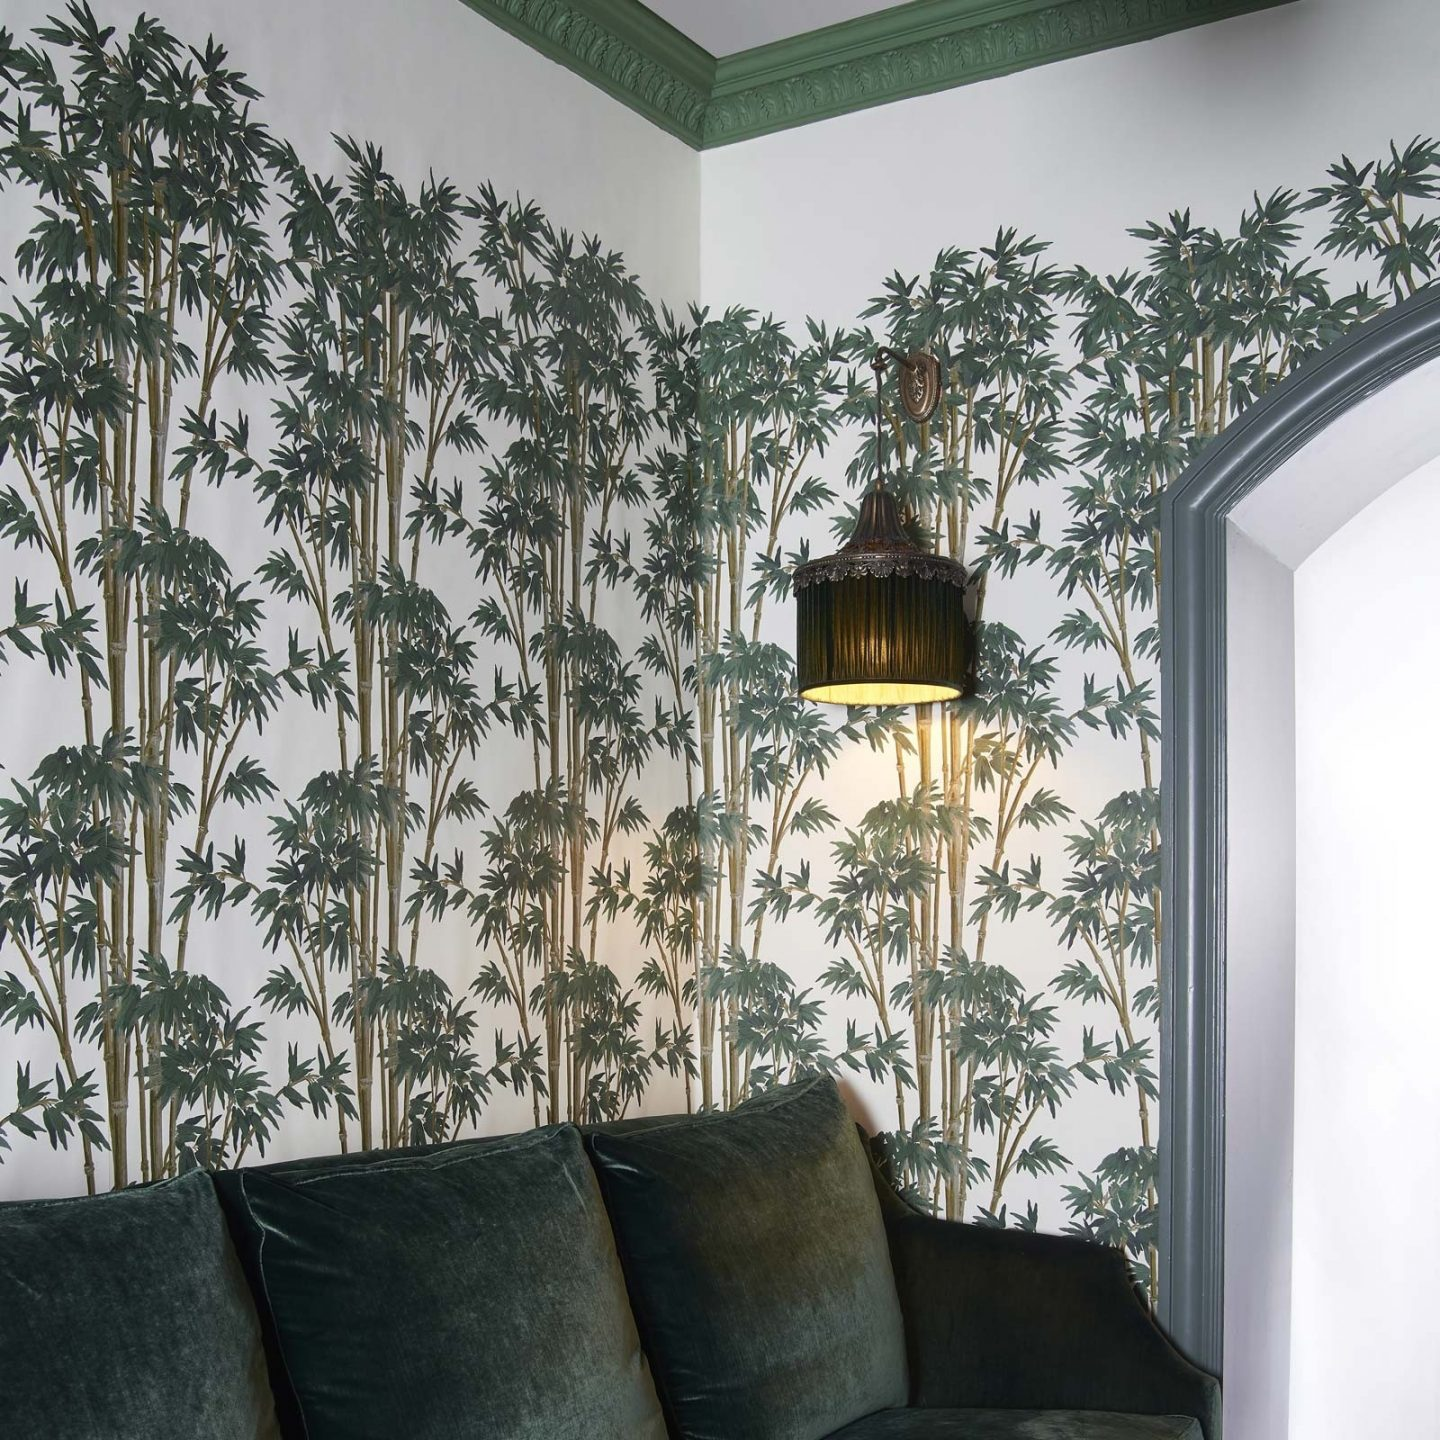 Green Wallpaper, the greenery edit, leafy wallpaper, jungle wallpaper, foliage wallpaper, Bambusa wallpaper, House of Hackney